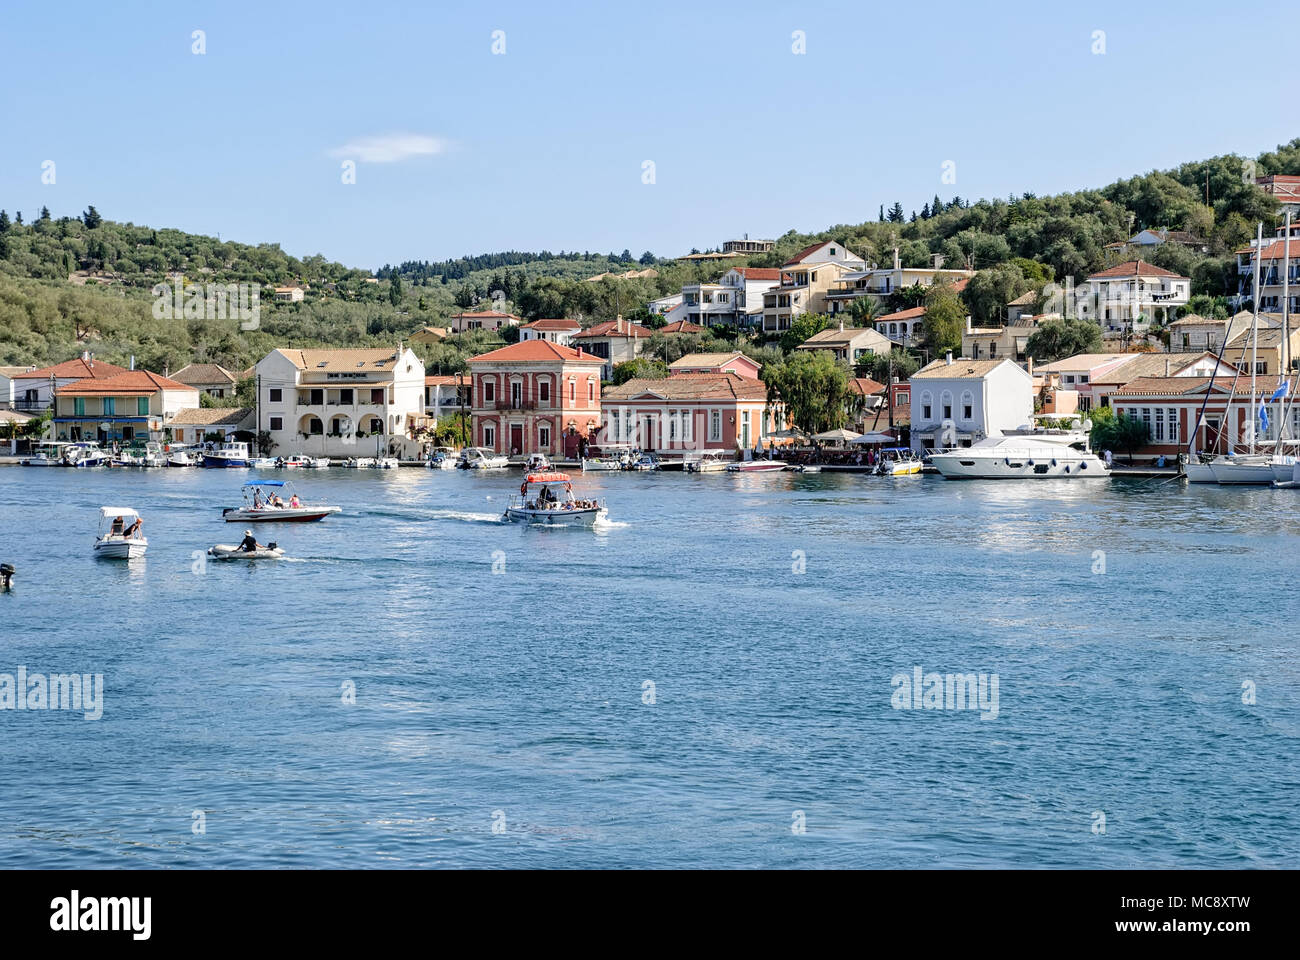 Hot September in Gaios Harbour, Paxi, Greece - Stock Image